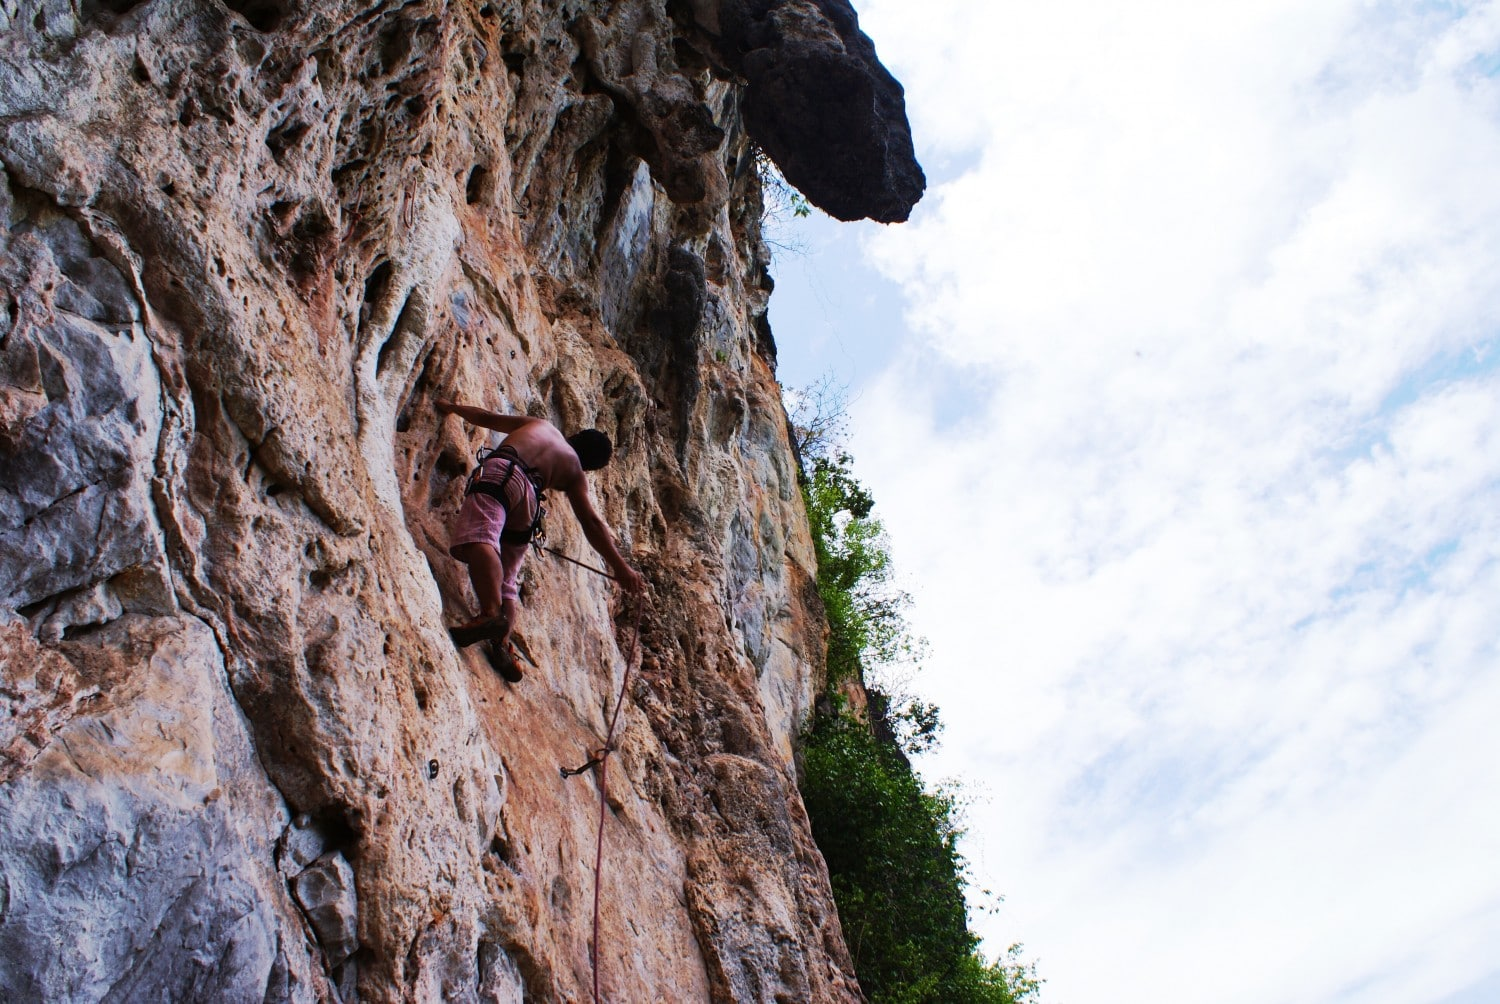 Rock climbing in Vang Vieng Laos